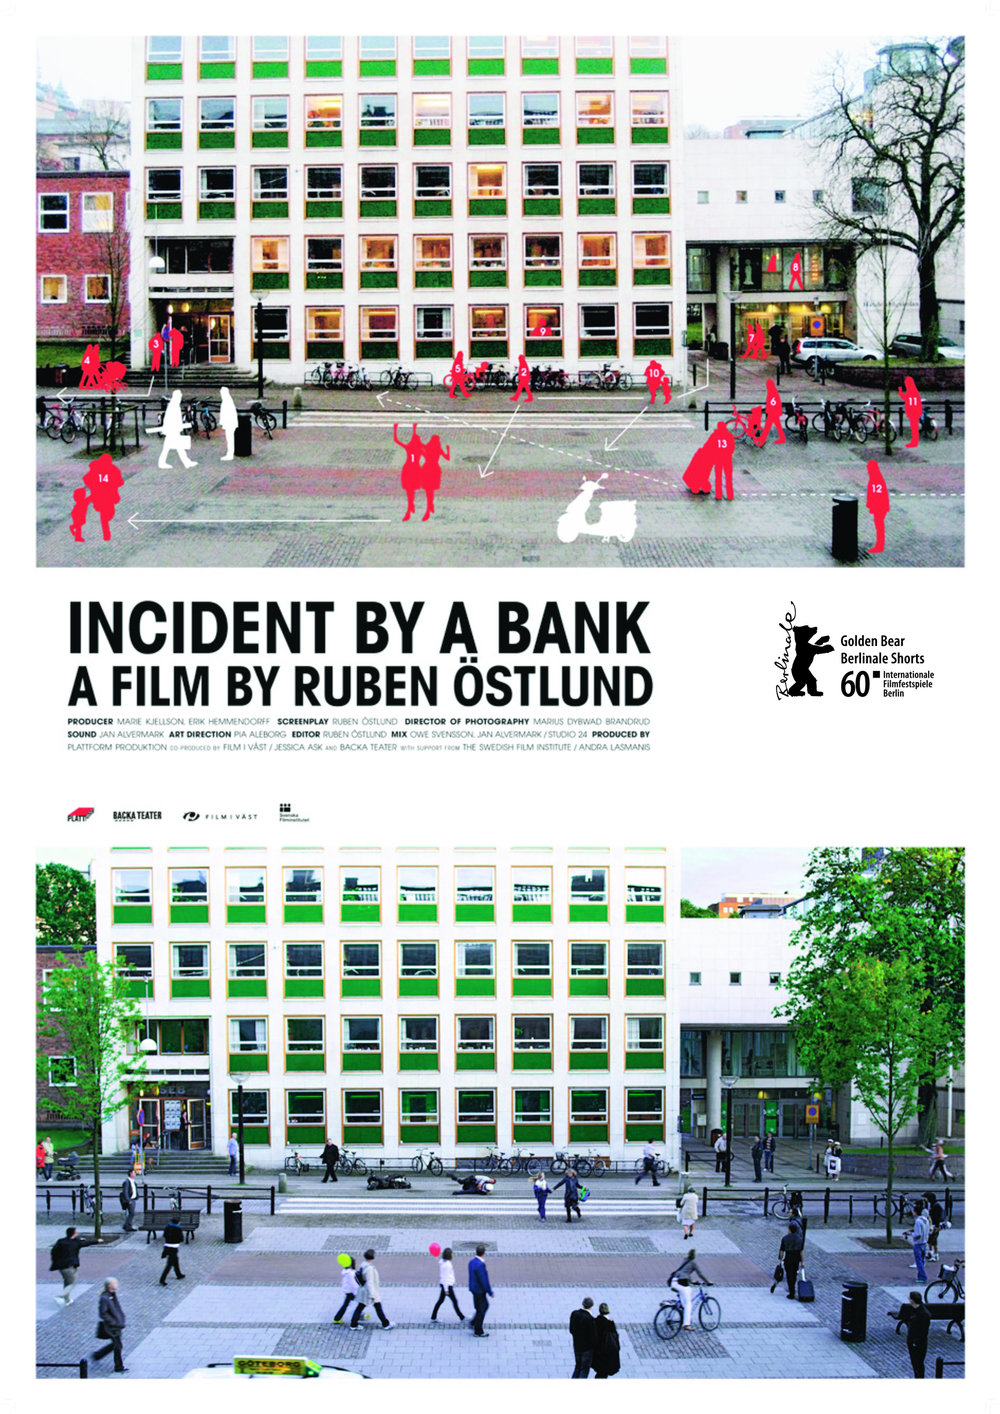 INCIDENT BY A BANK_1.jpg